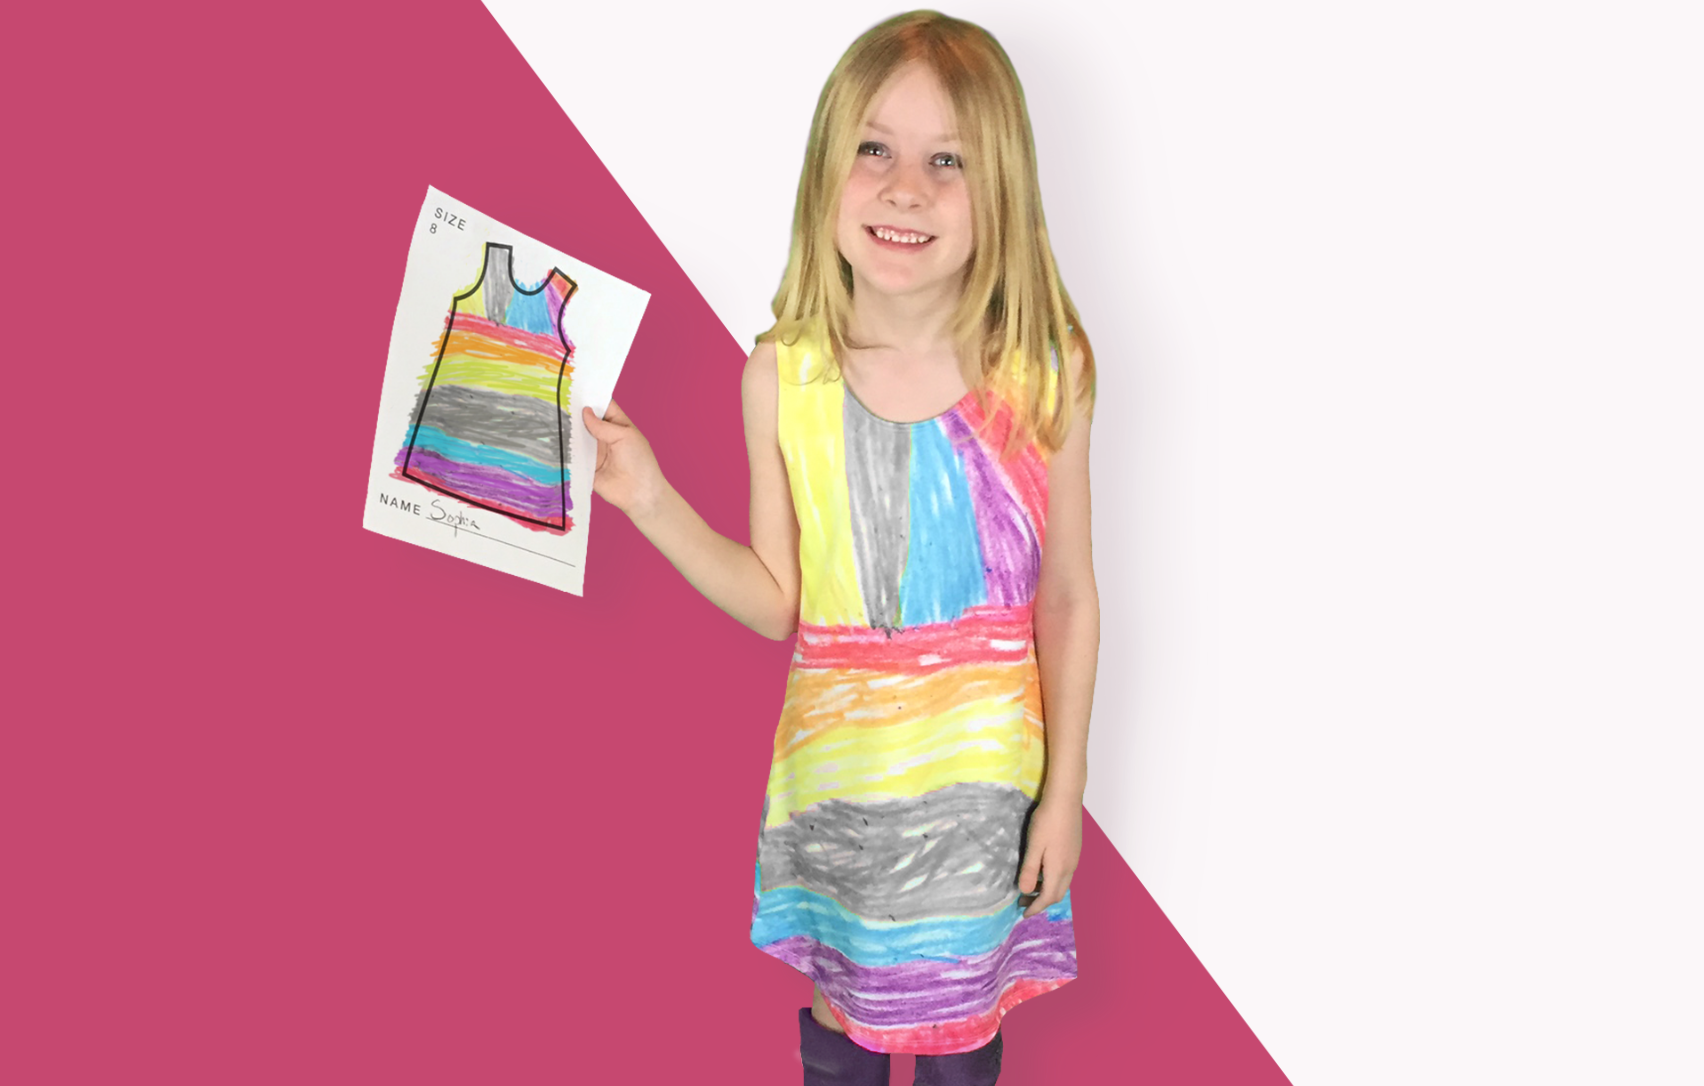 Picture This Clothing - Wear your Imagination!